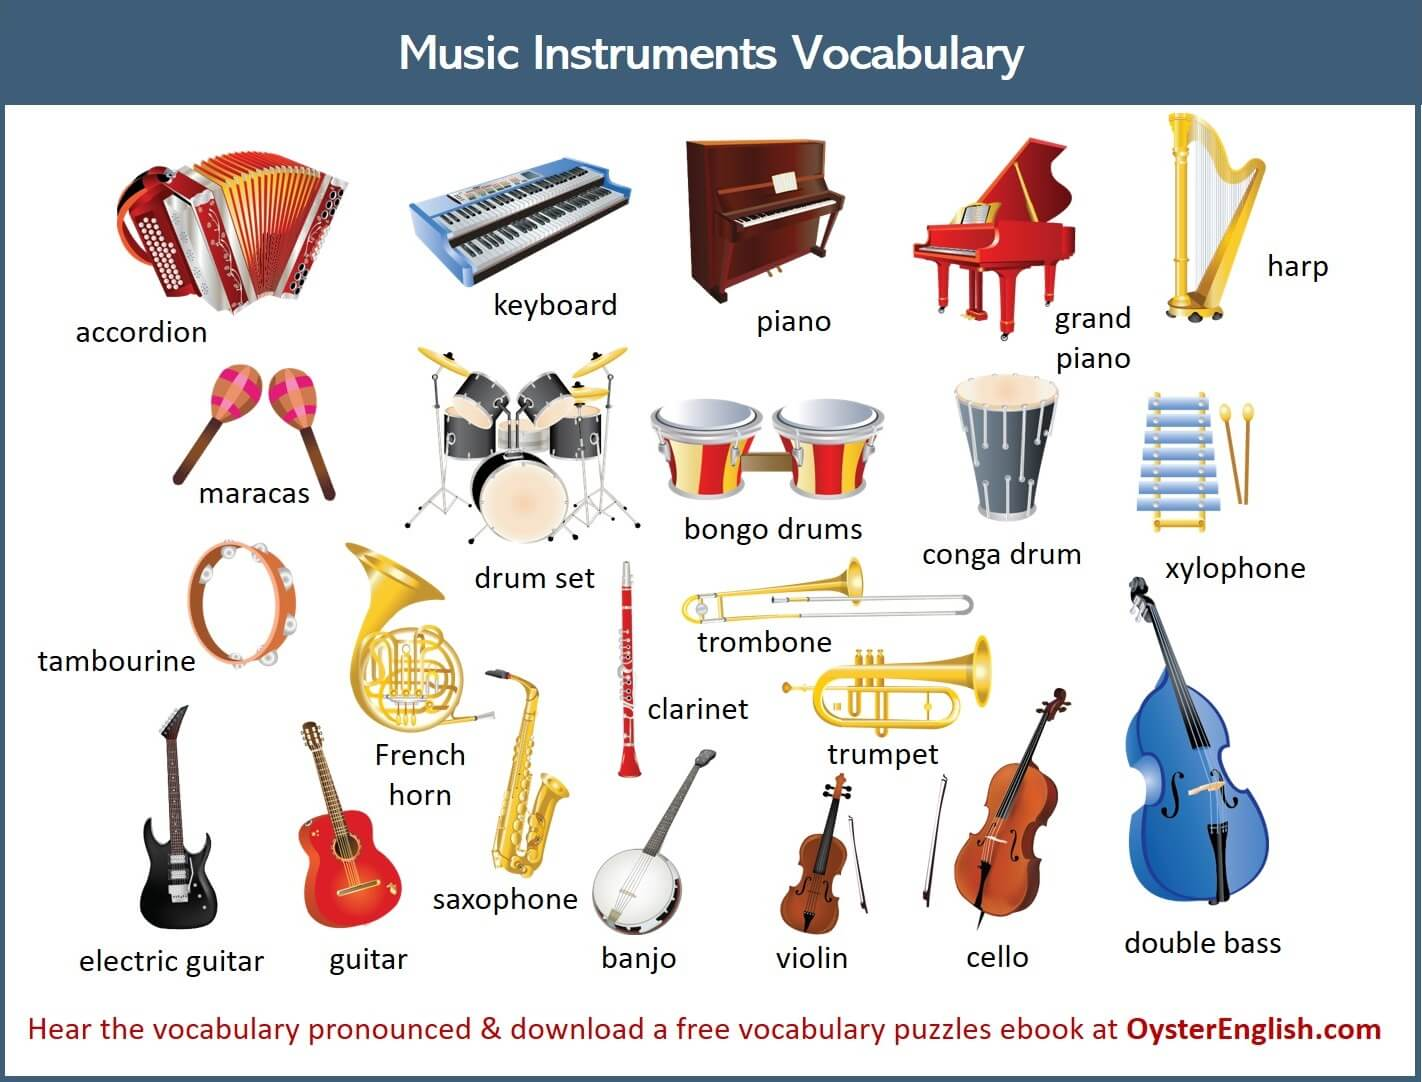 A collection of all of the musical instrument illustrations featured on this page.